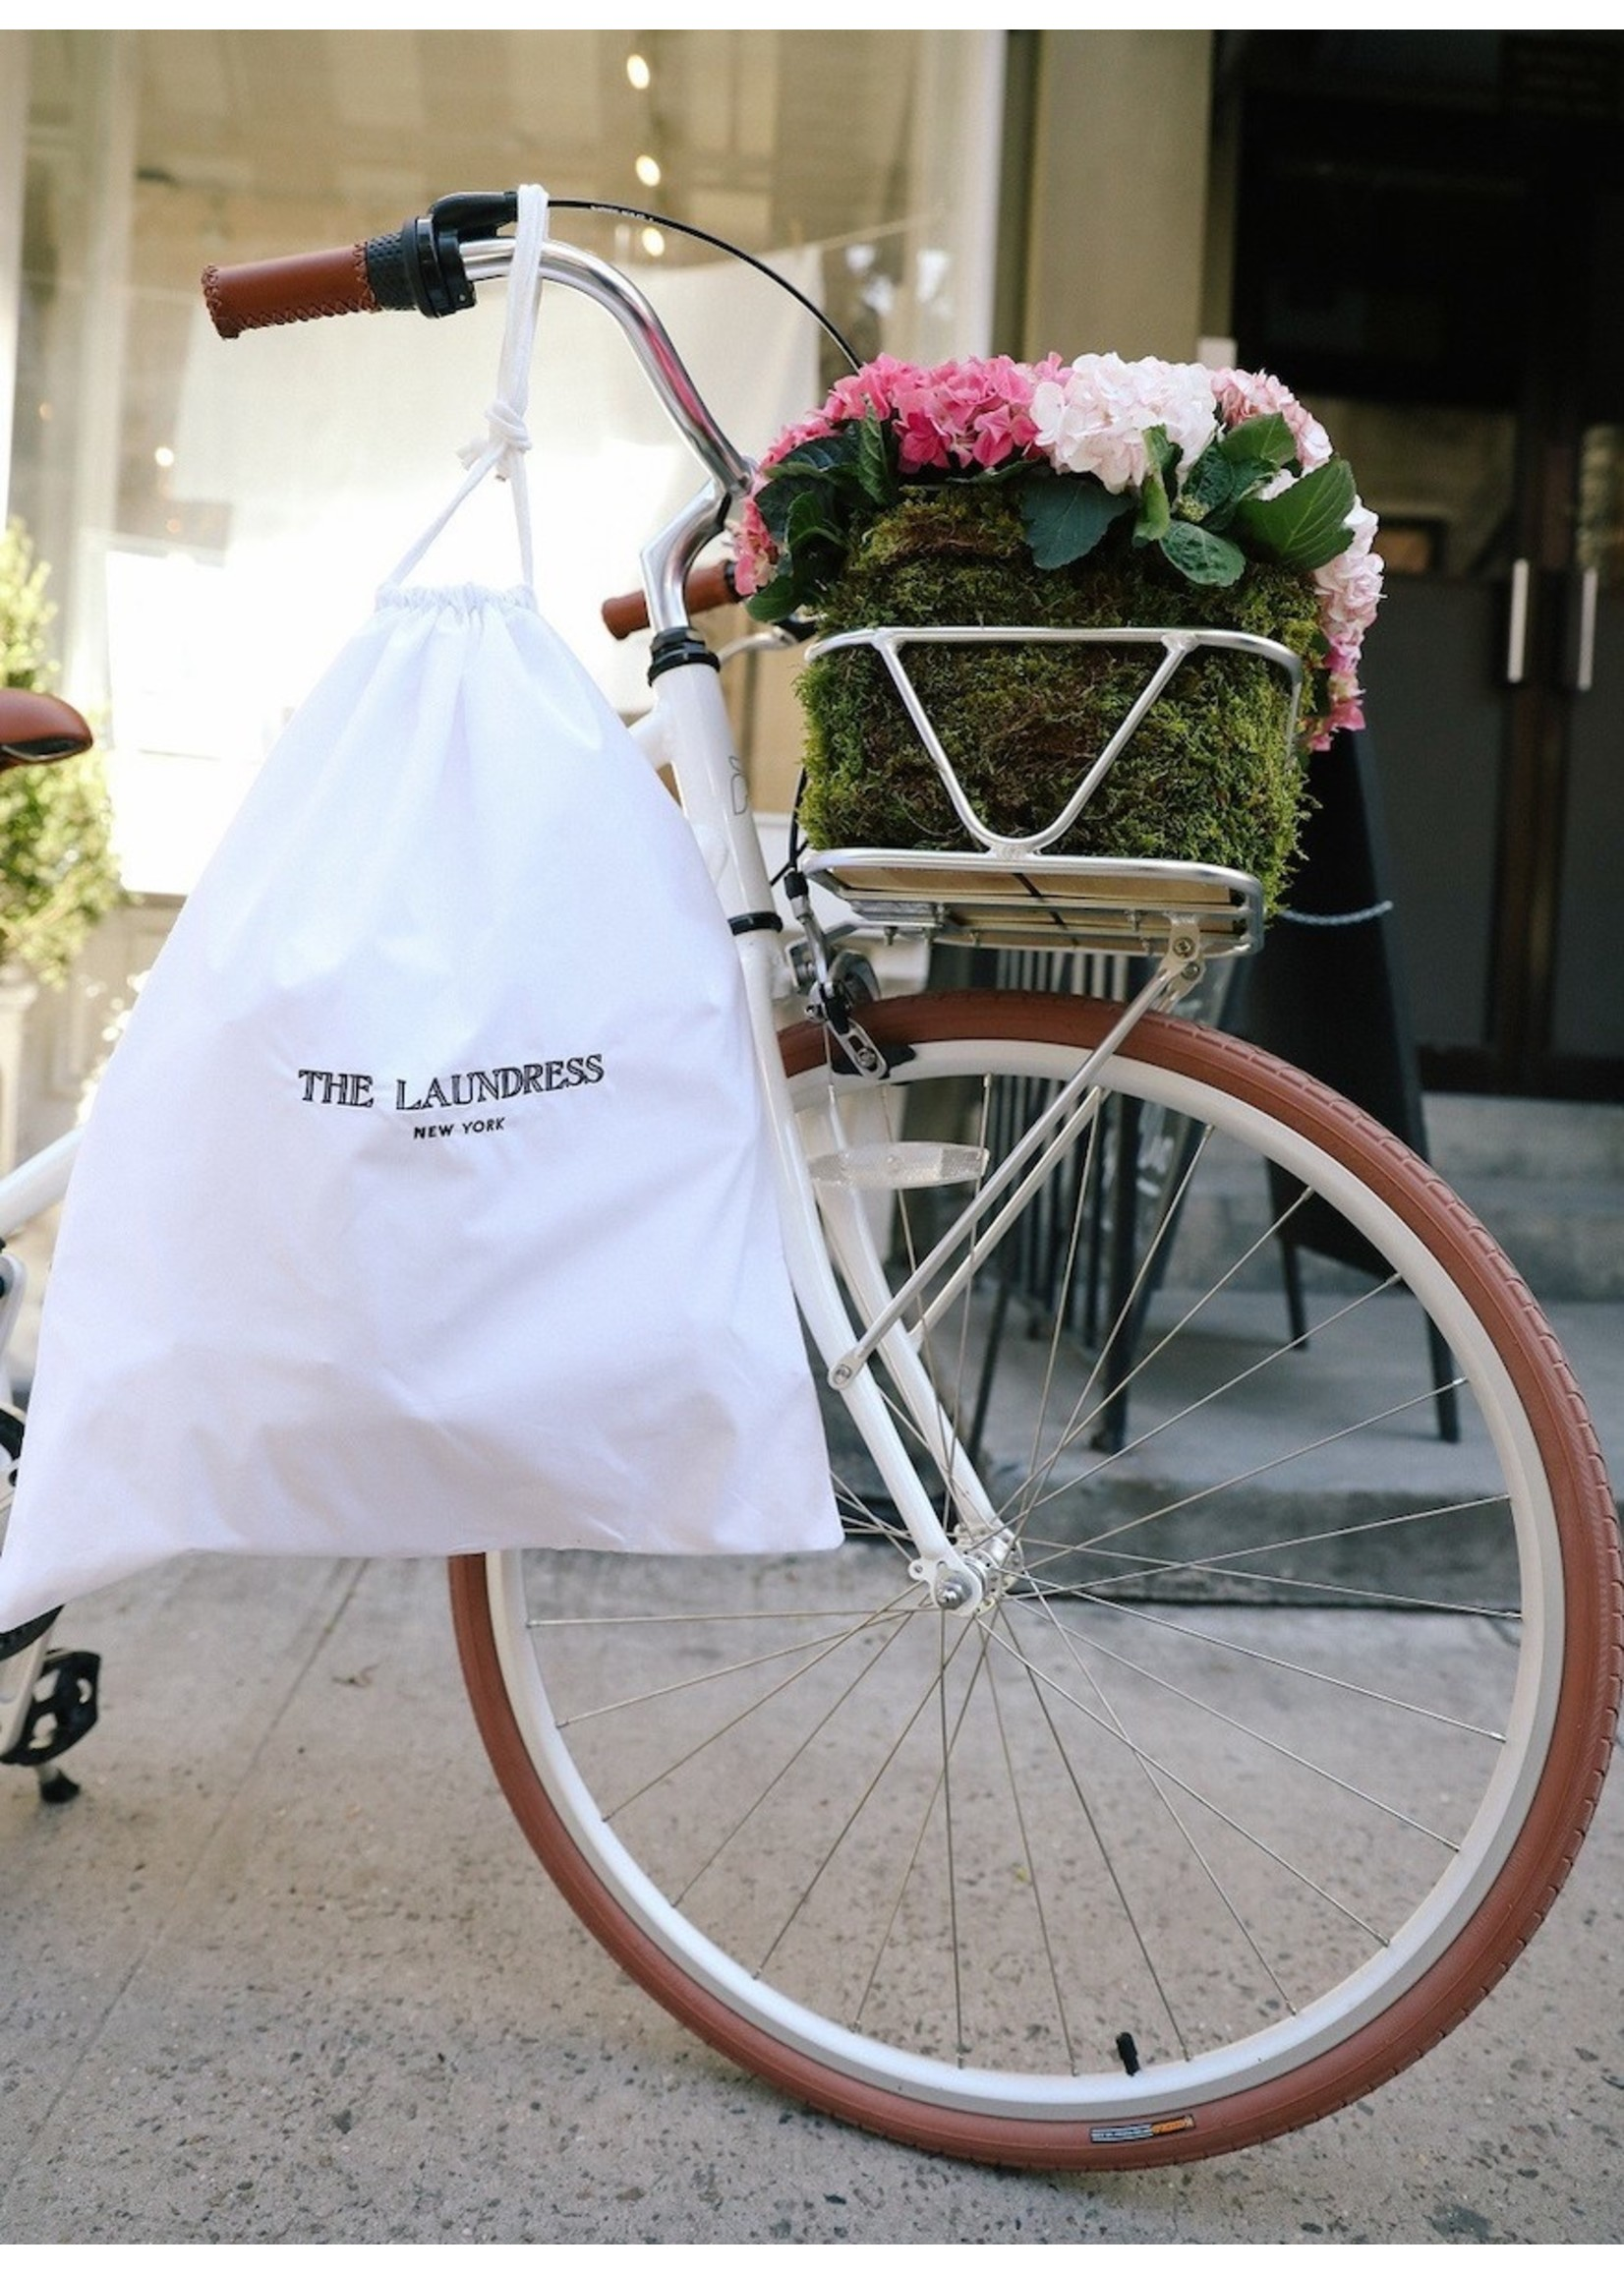 The Laundress New York Hotel Laundry Bag